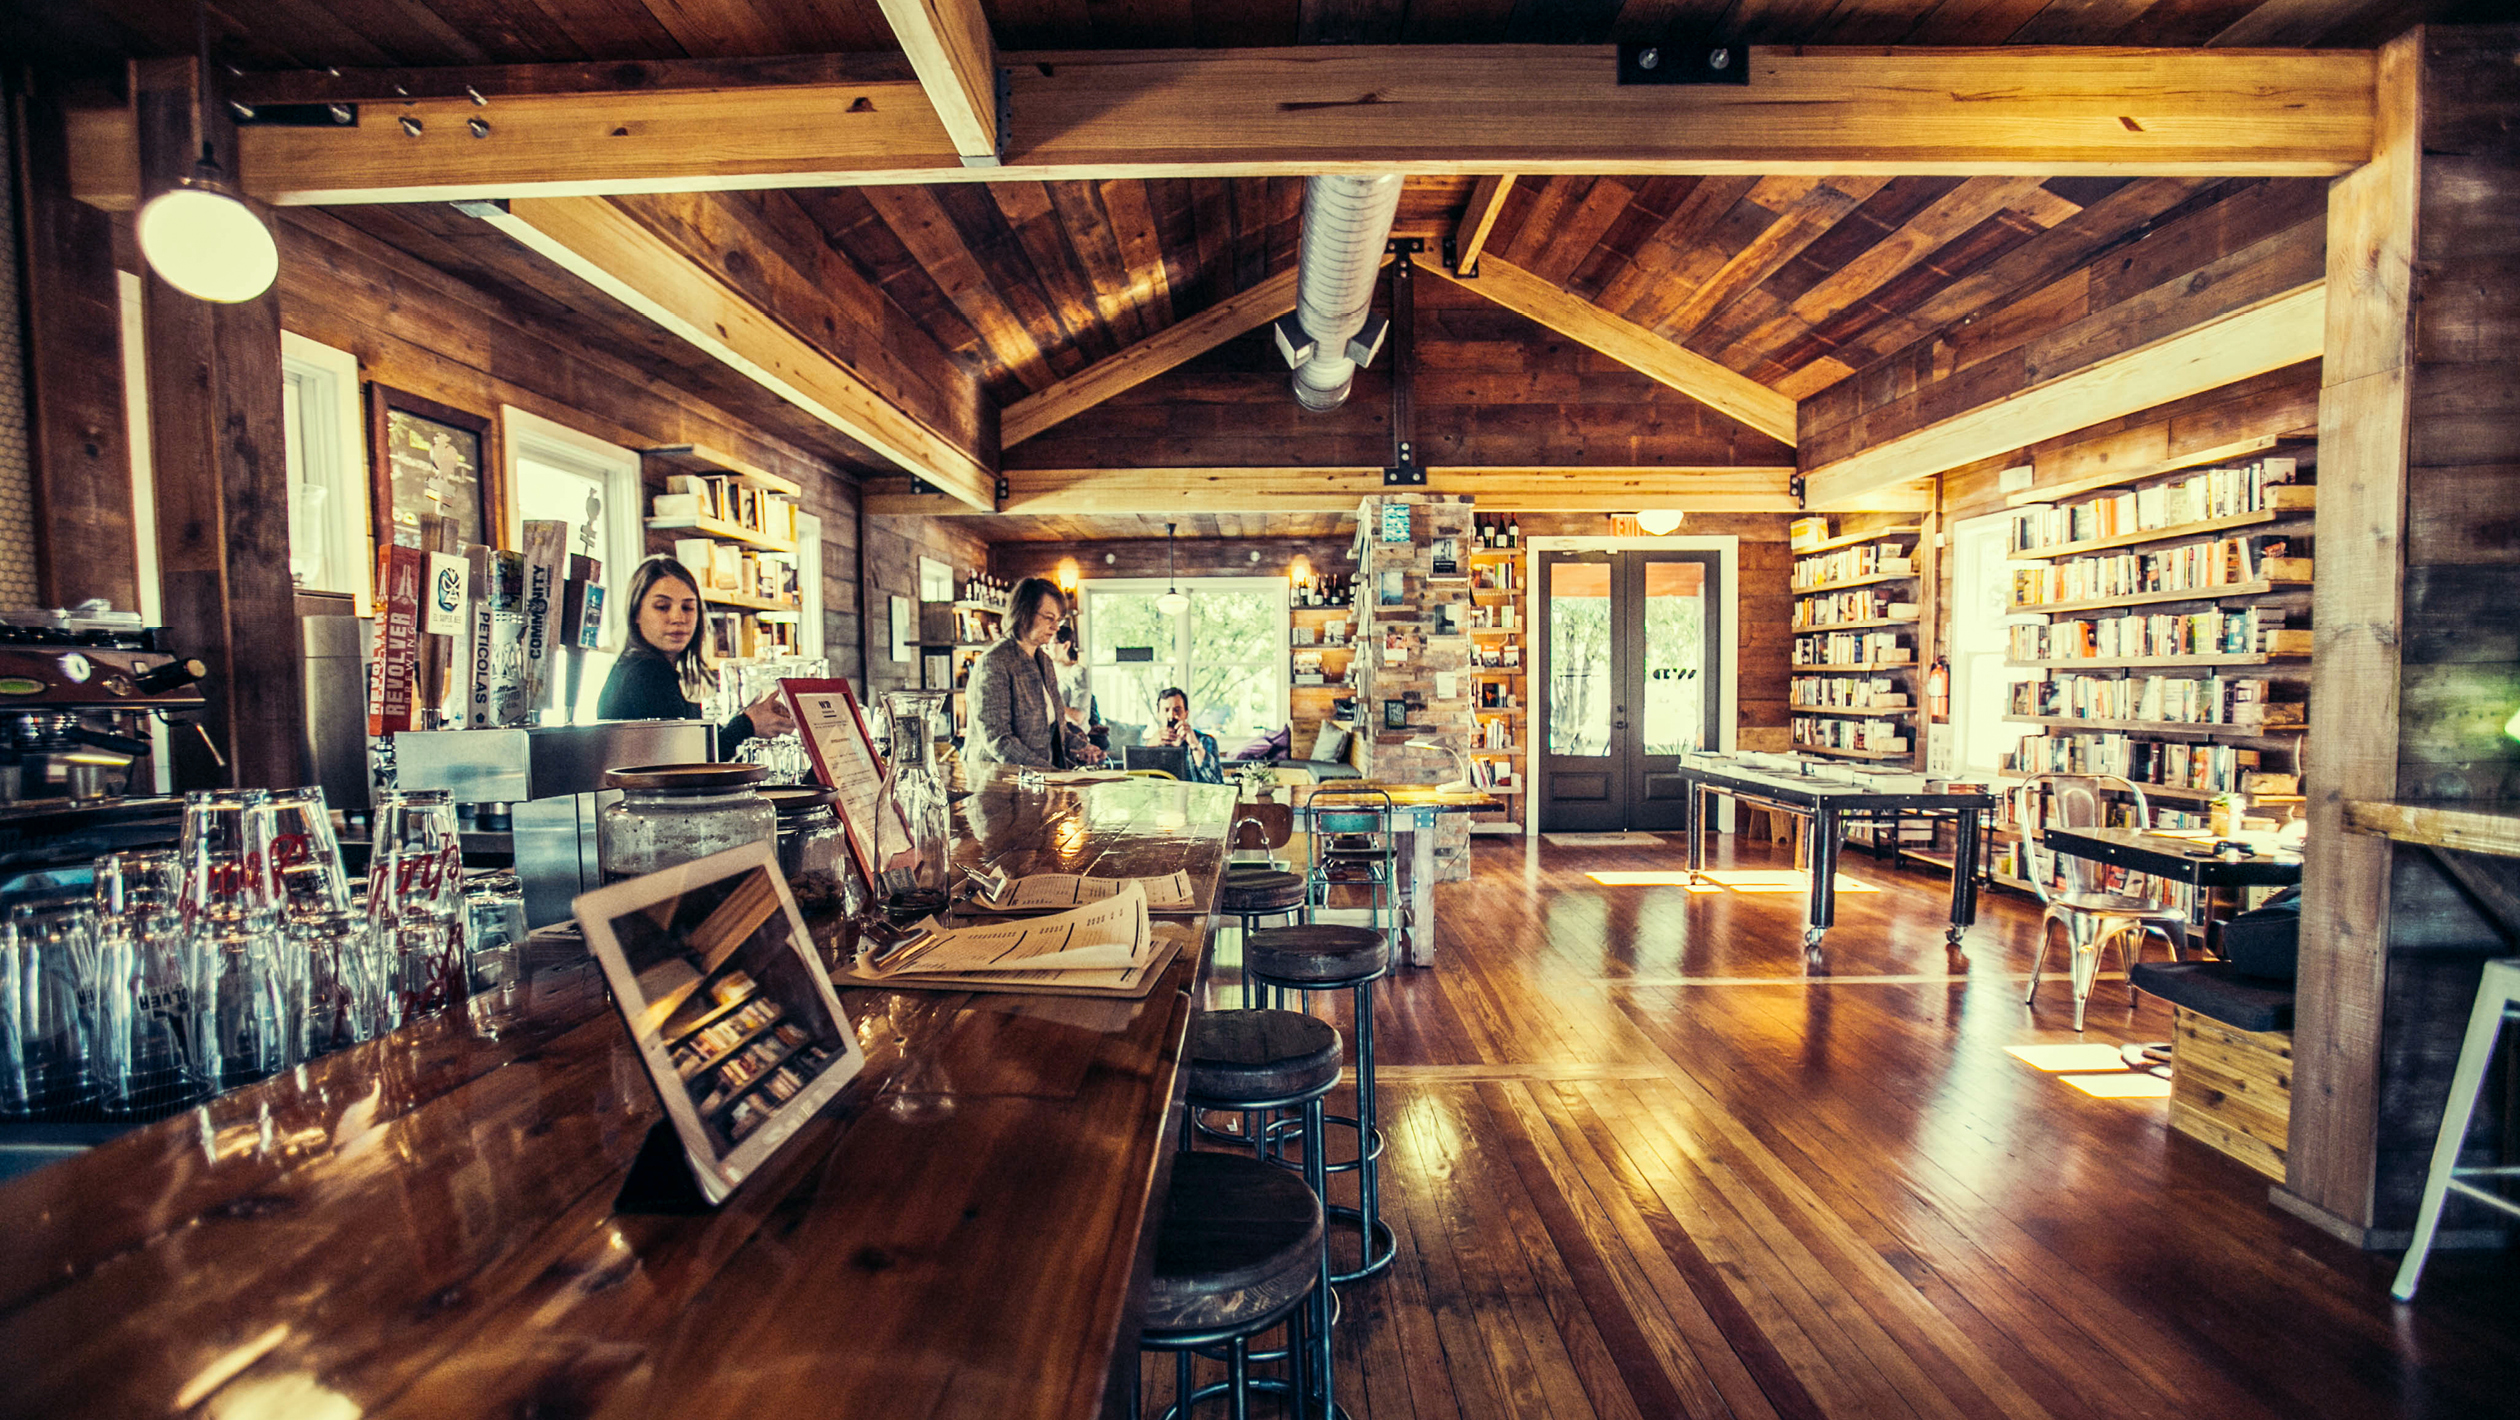 A Look Inside Bookstore Bars | SevenFifty Daily